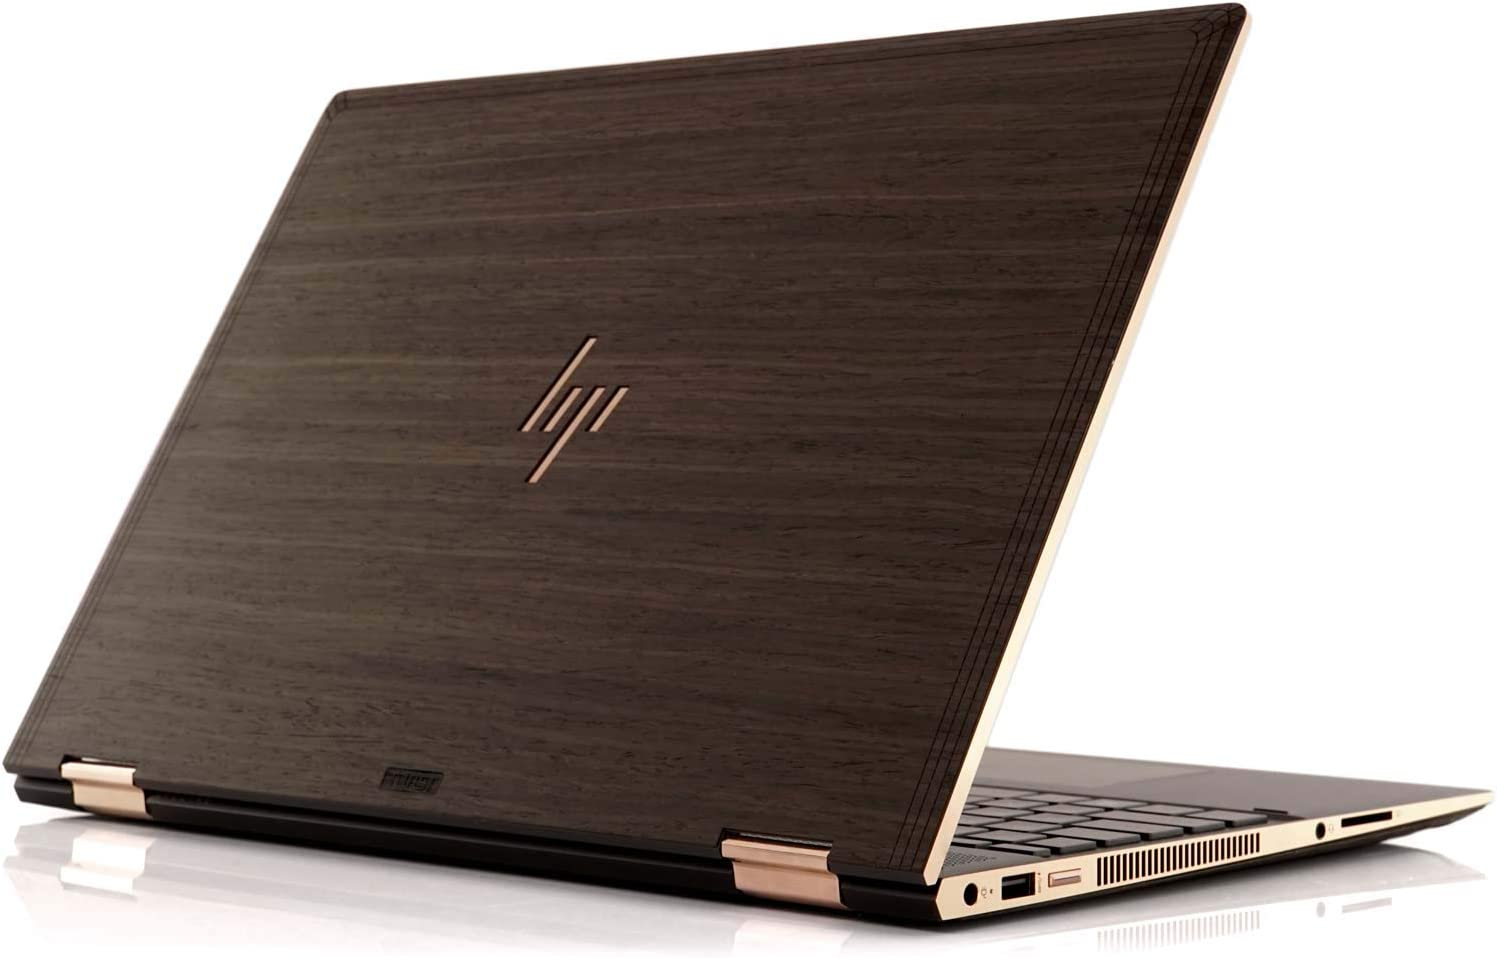 "TOAST - Real Wood, Self-Adhesive Cover for HP Spectre X360 15"" 2018 Model - Ebony"